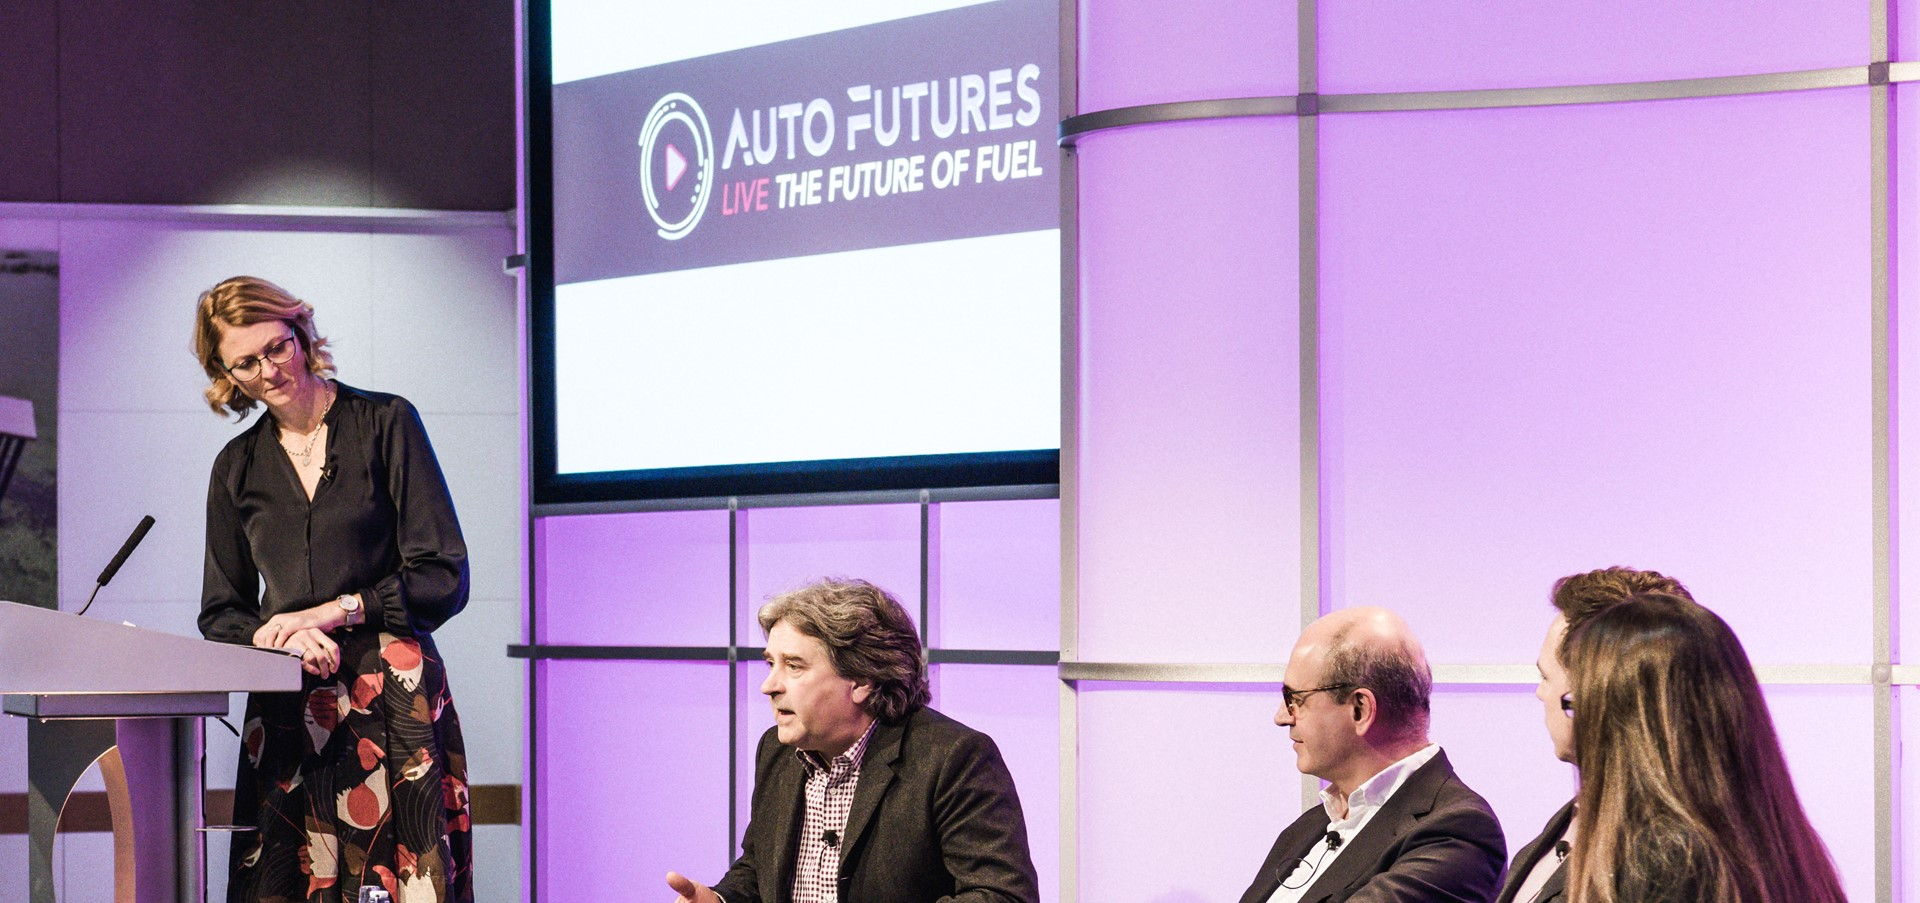 The Future of Fuel Debate